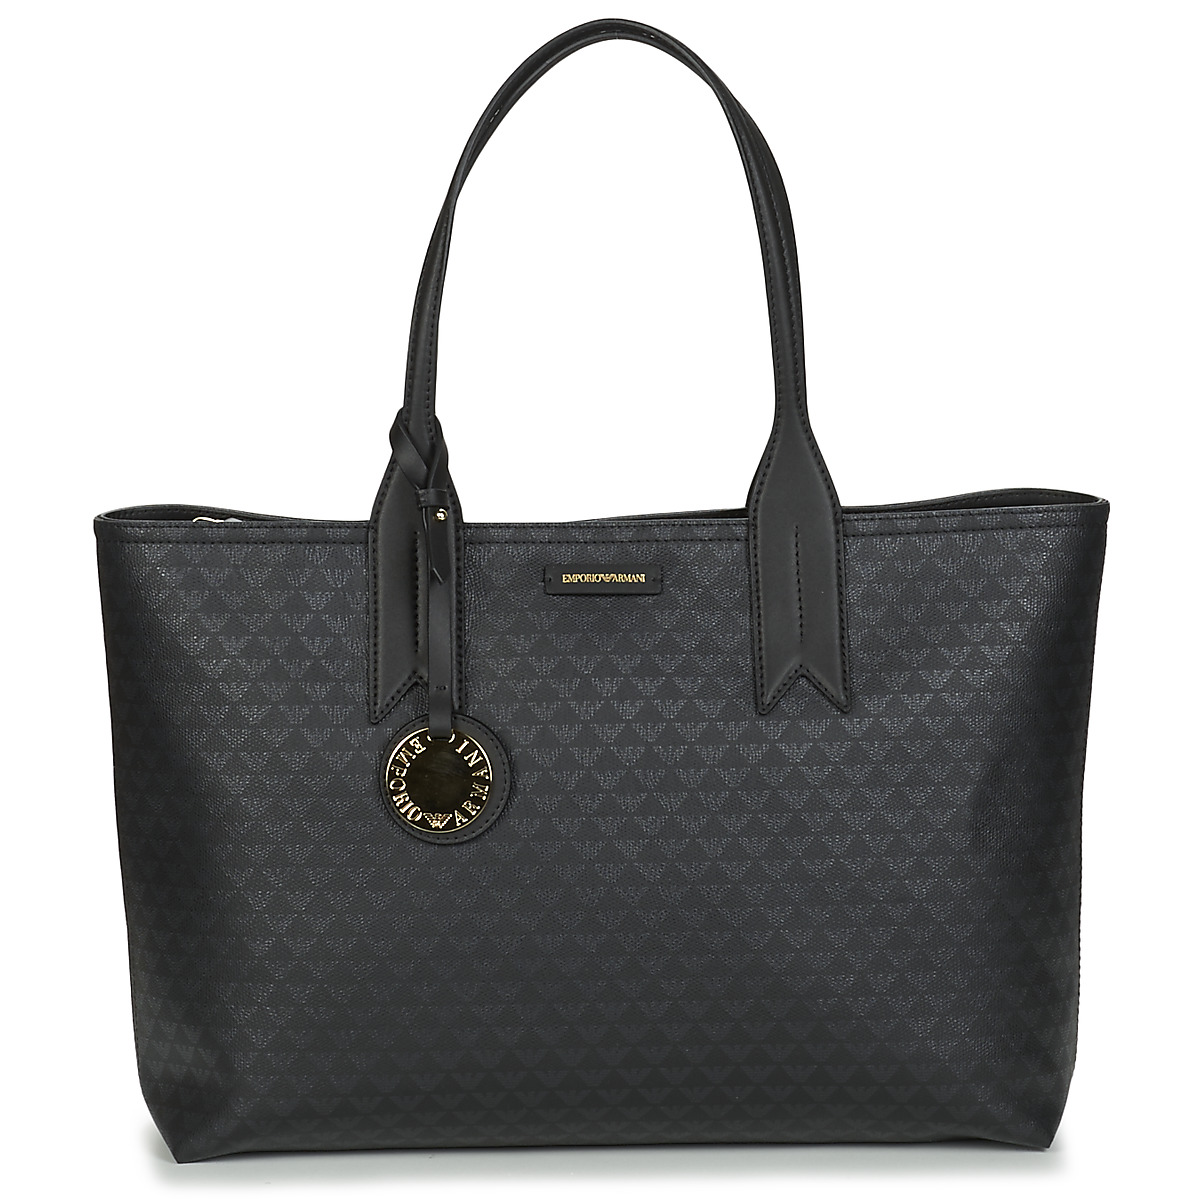 Emporio Armani Borsa A Spalla Shoulder Bag Black in nero